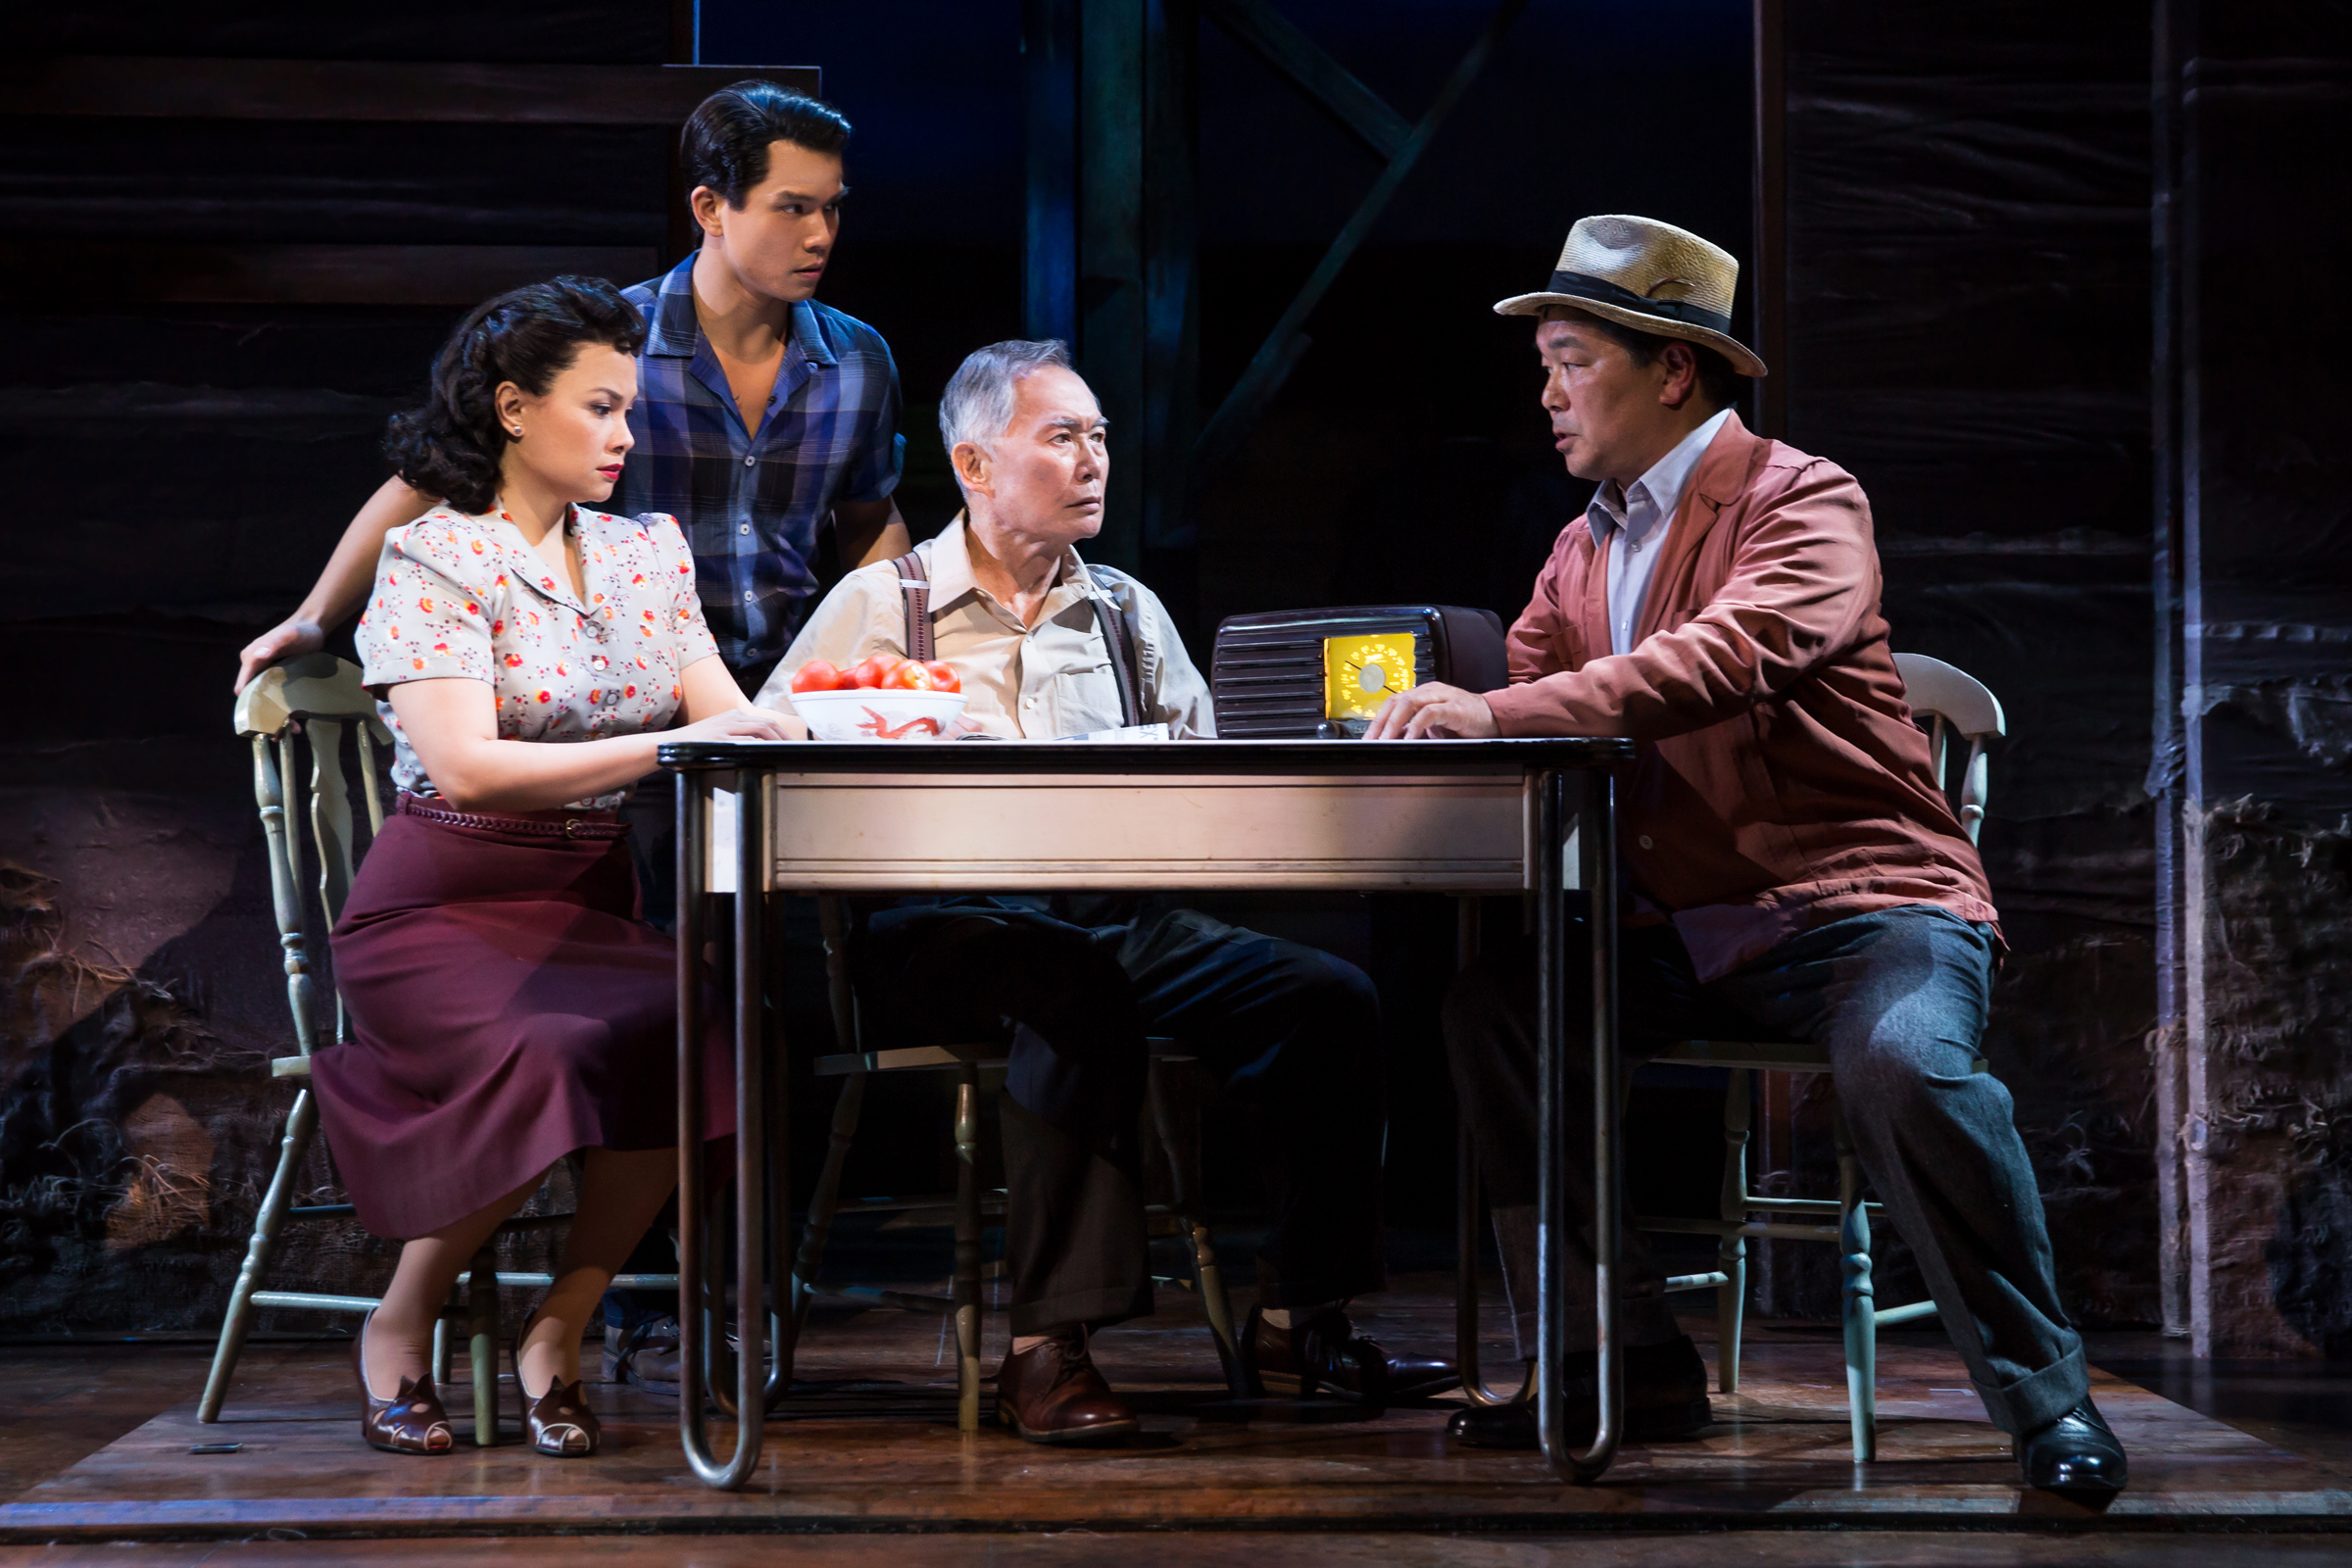 """George Takei, center, is among the leading figures in the film """"Allegiance,"""" which recalls the experience of a Japanese-American family incarcerated during World War II. The film will be shown Dec. 7 at Pelican Cinemas in Klamath Falls."""